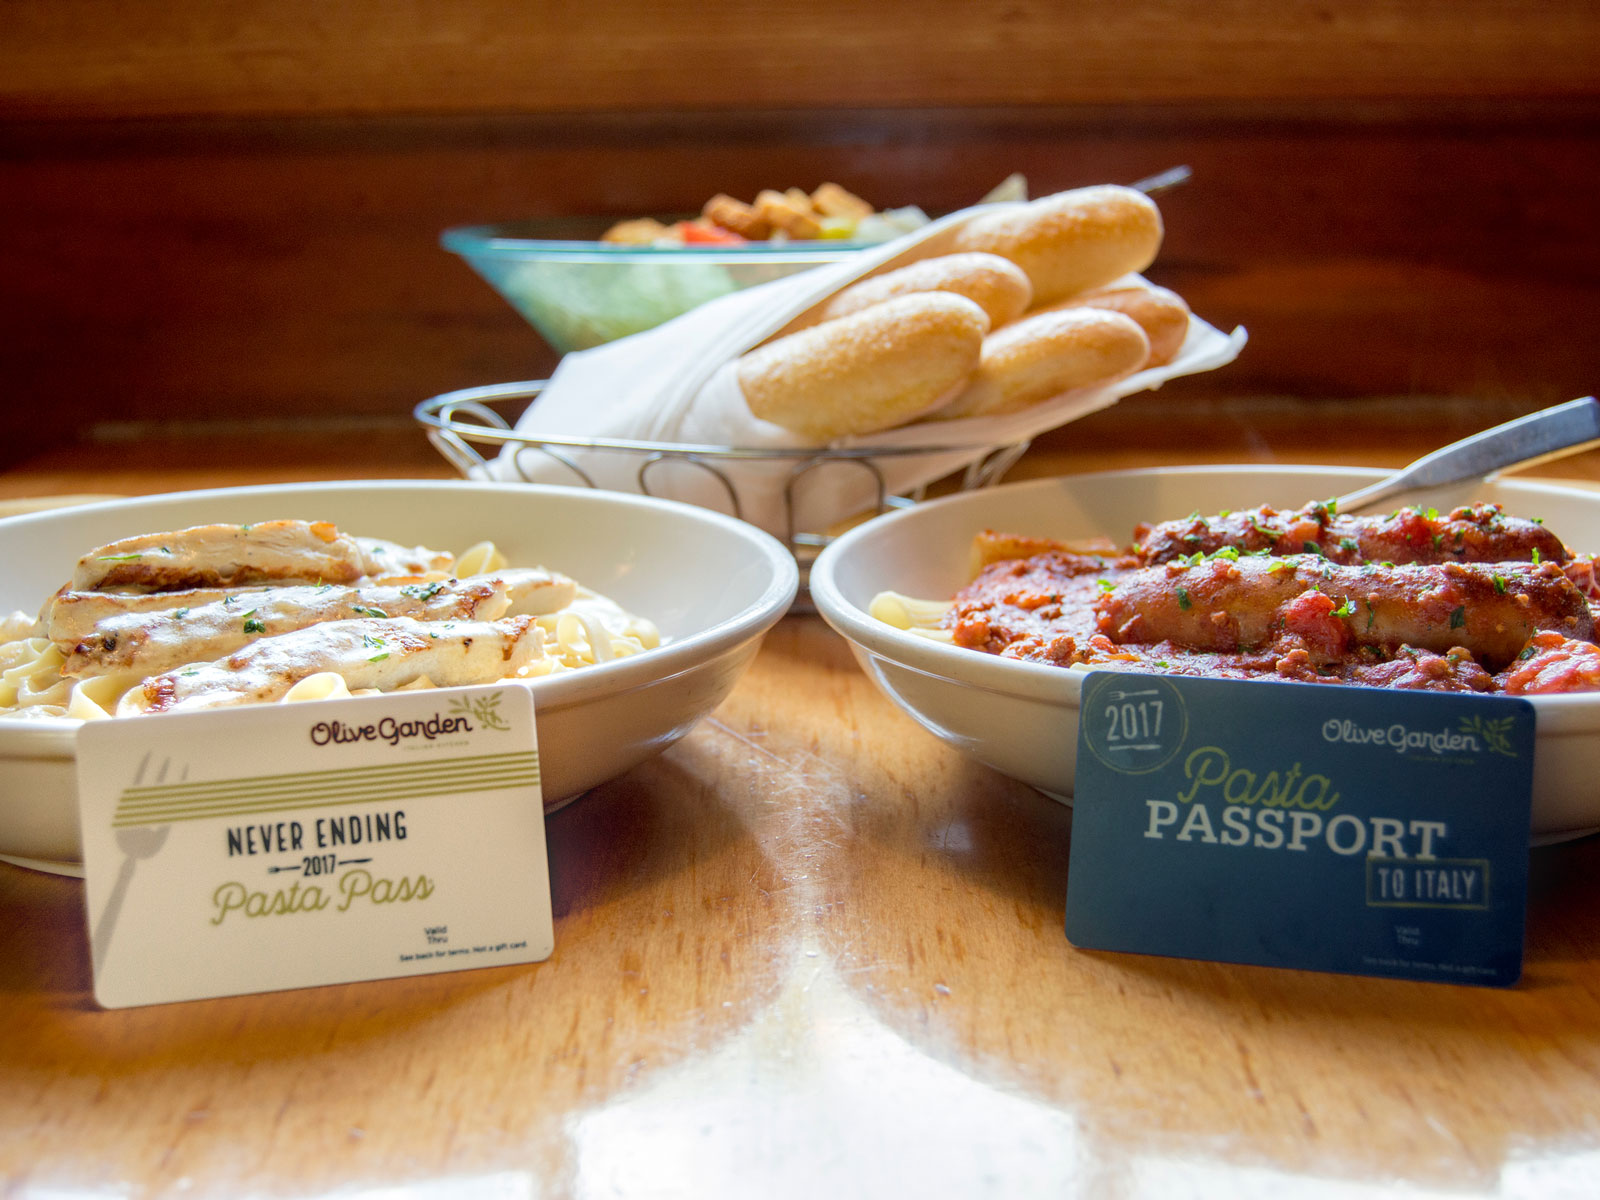 Olive Garden brings back pasta pass, on sale Thursday